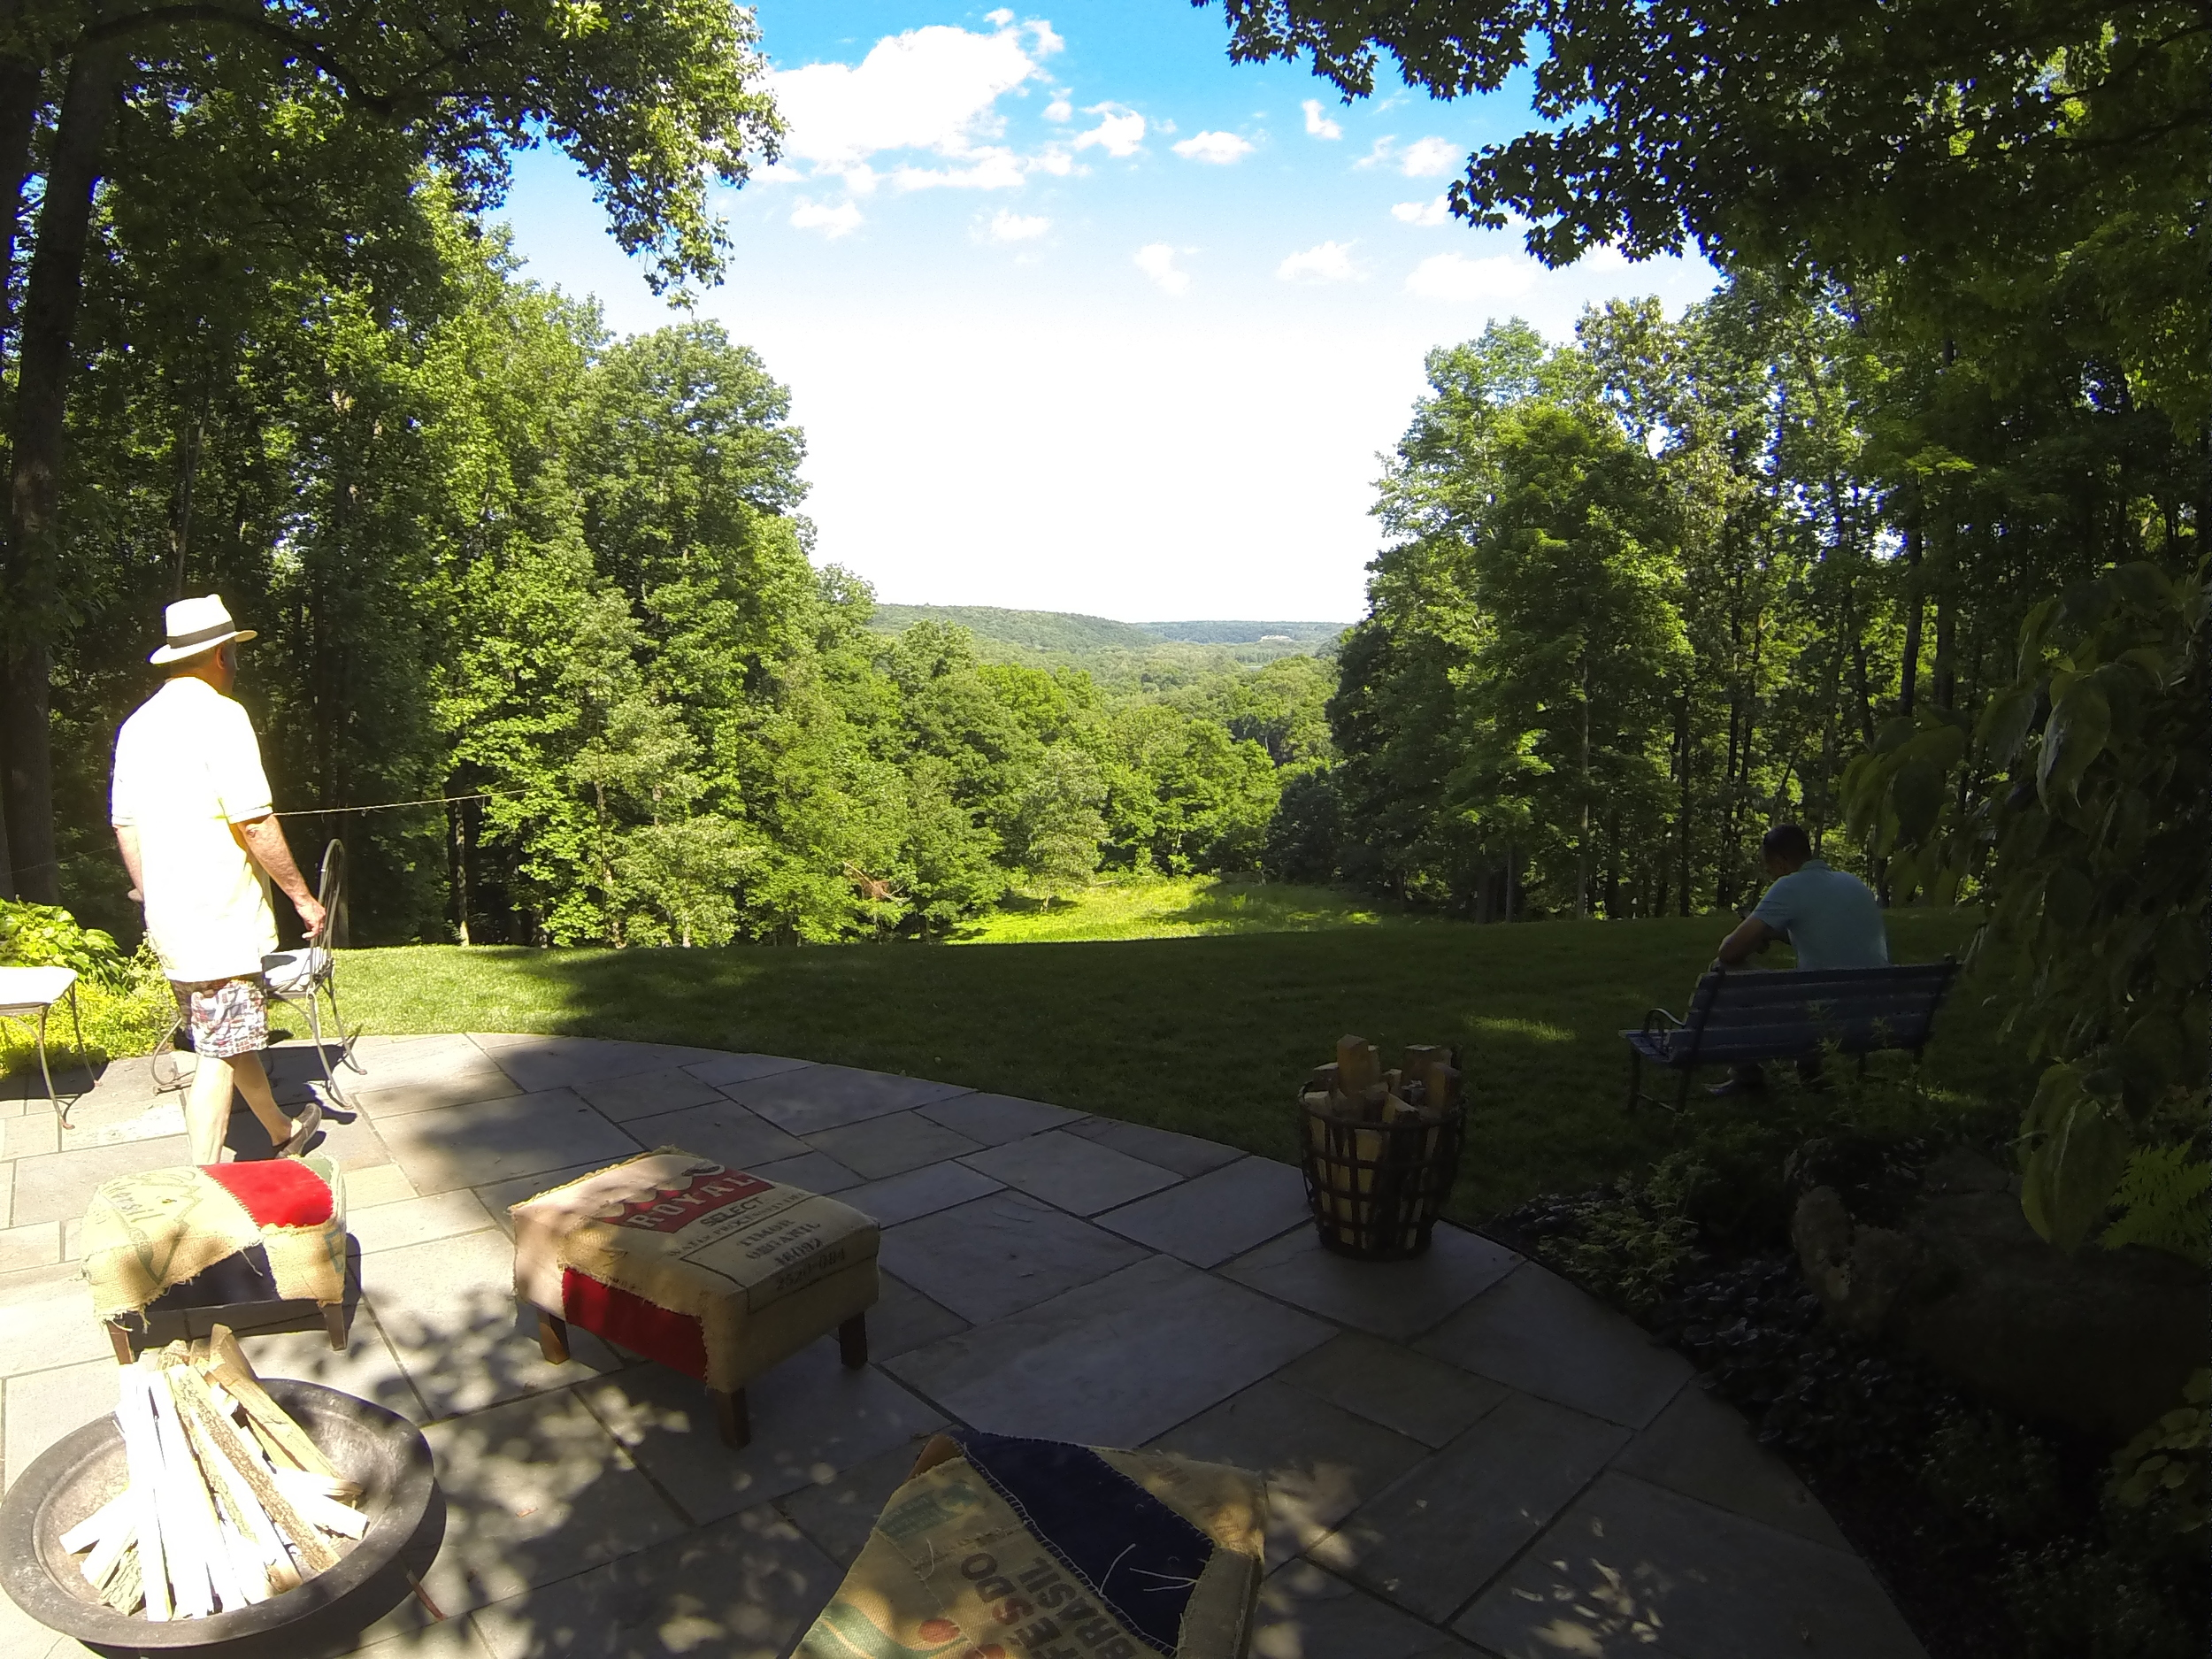 Words (and this photo) don't do justice to the breathtaking view of the Delaware River valley from the lower terrace.